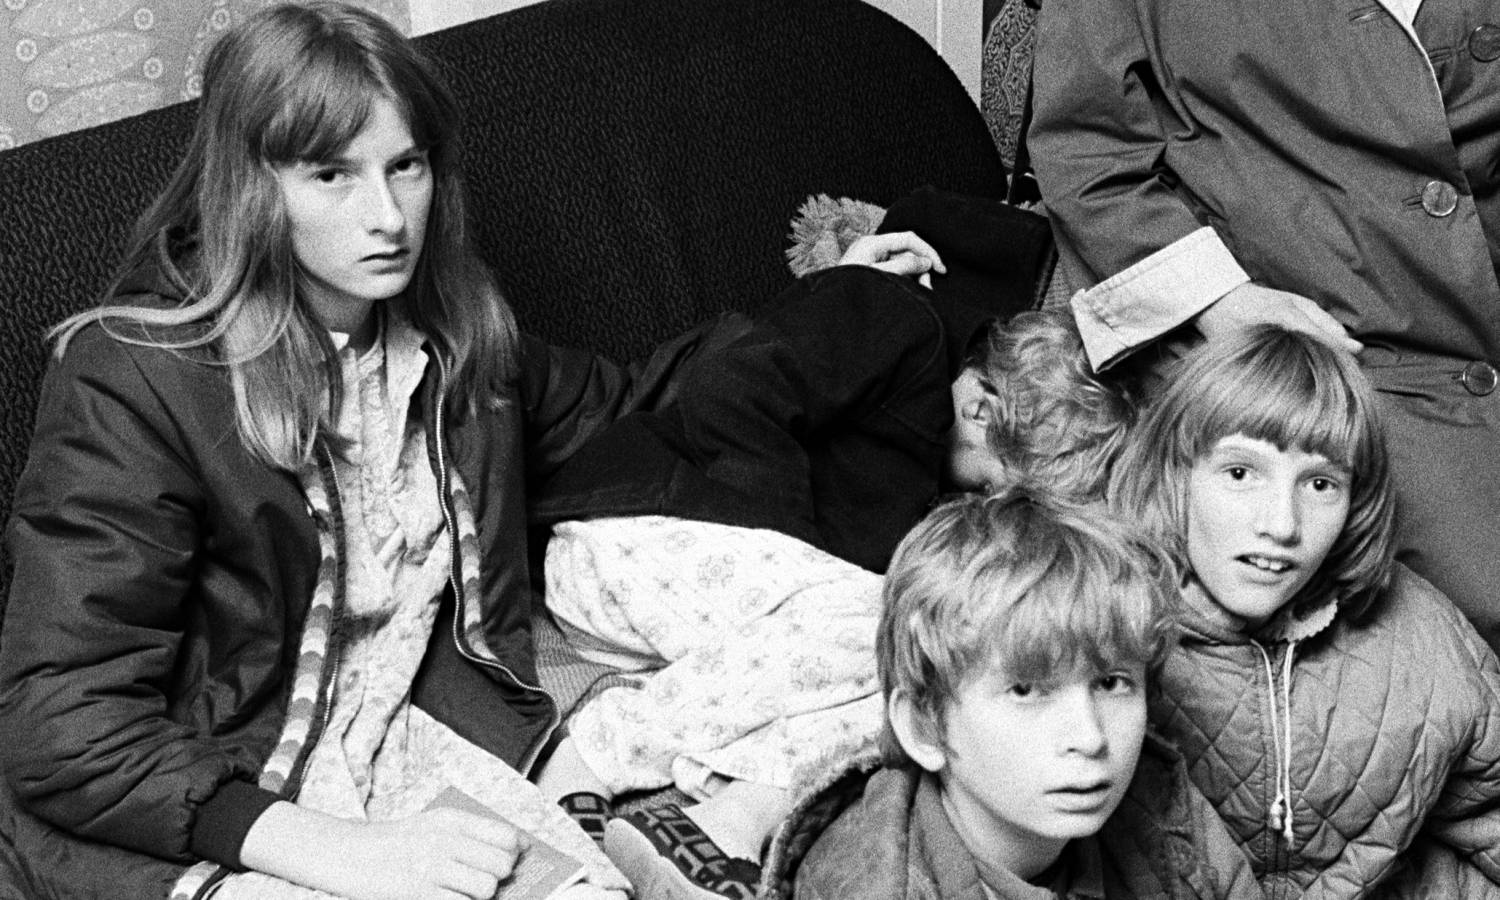 Enfield poltergeist: one of the most famous and mysterious paranormal phenomena, is still considered a mystery 99